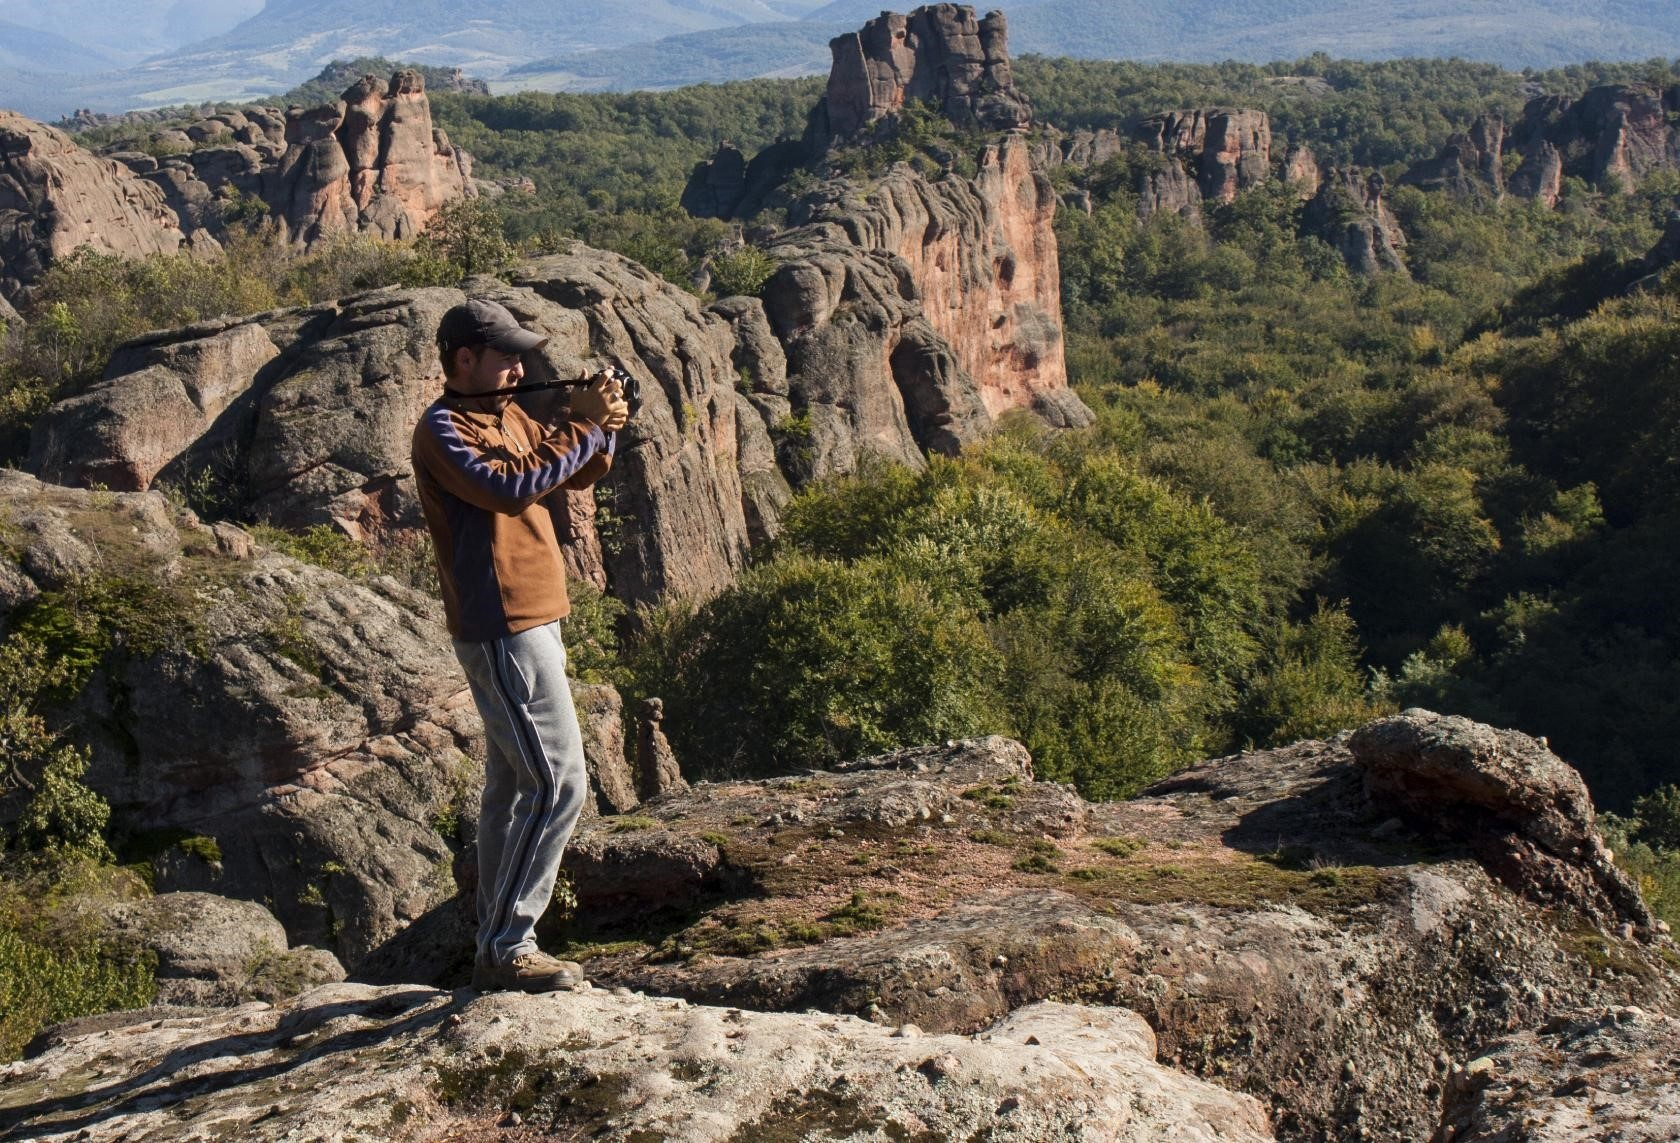 Man taking photograph in USA national park